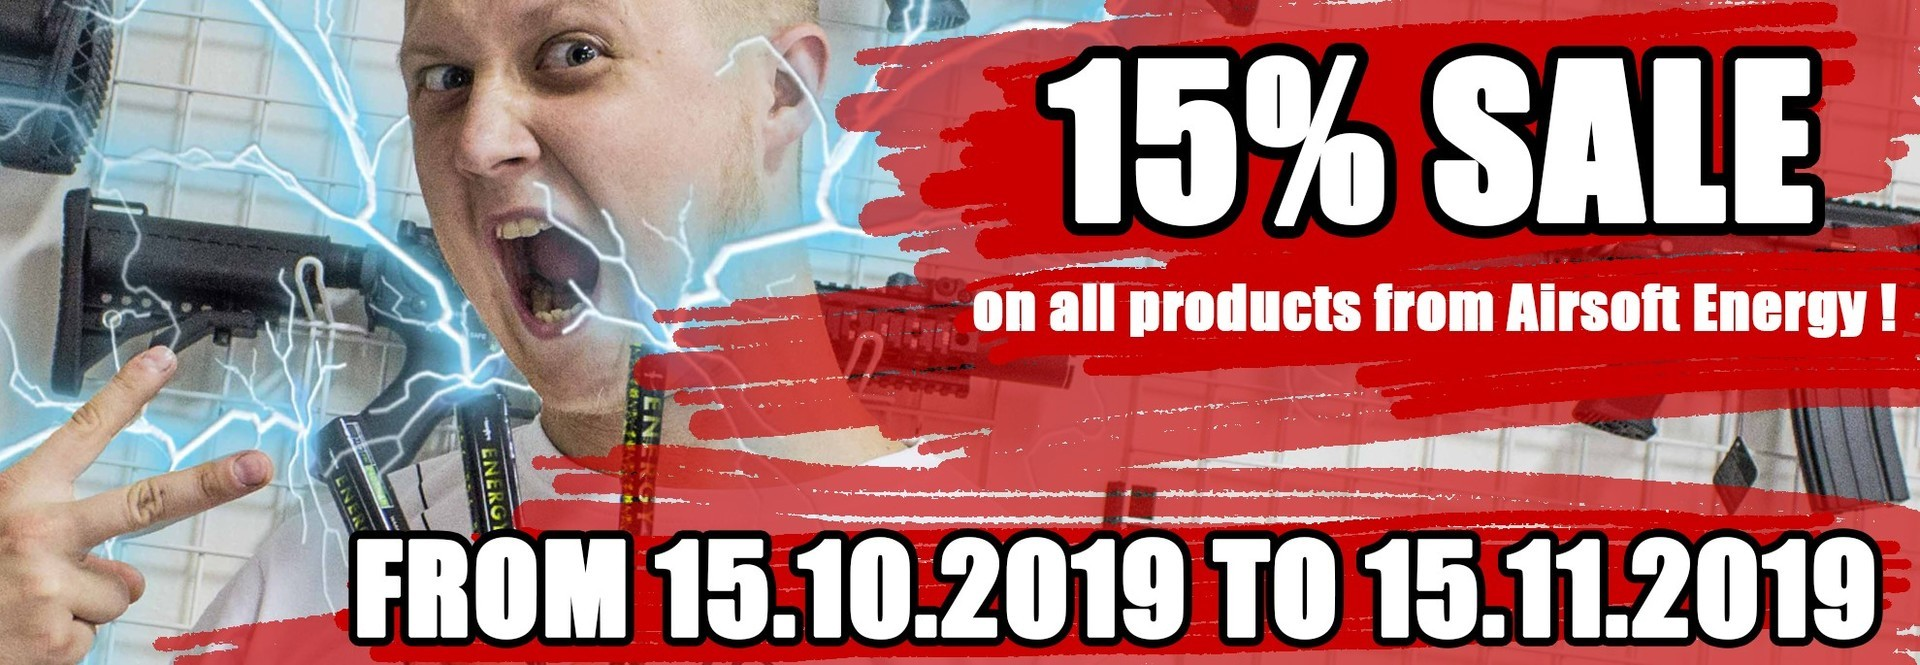 Sale 15% on all products from Energy Airsoft